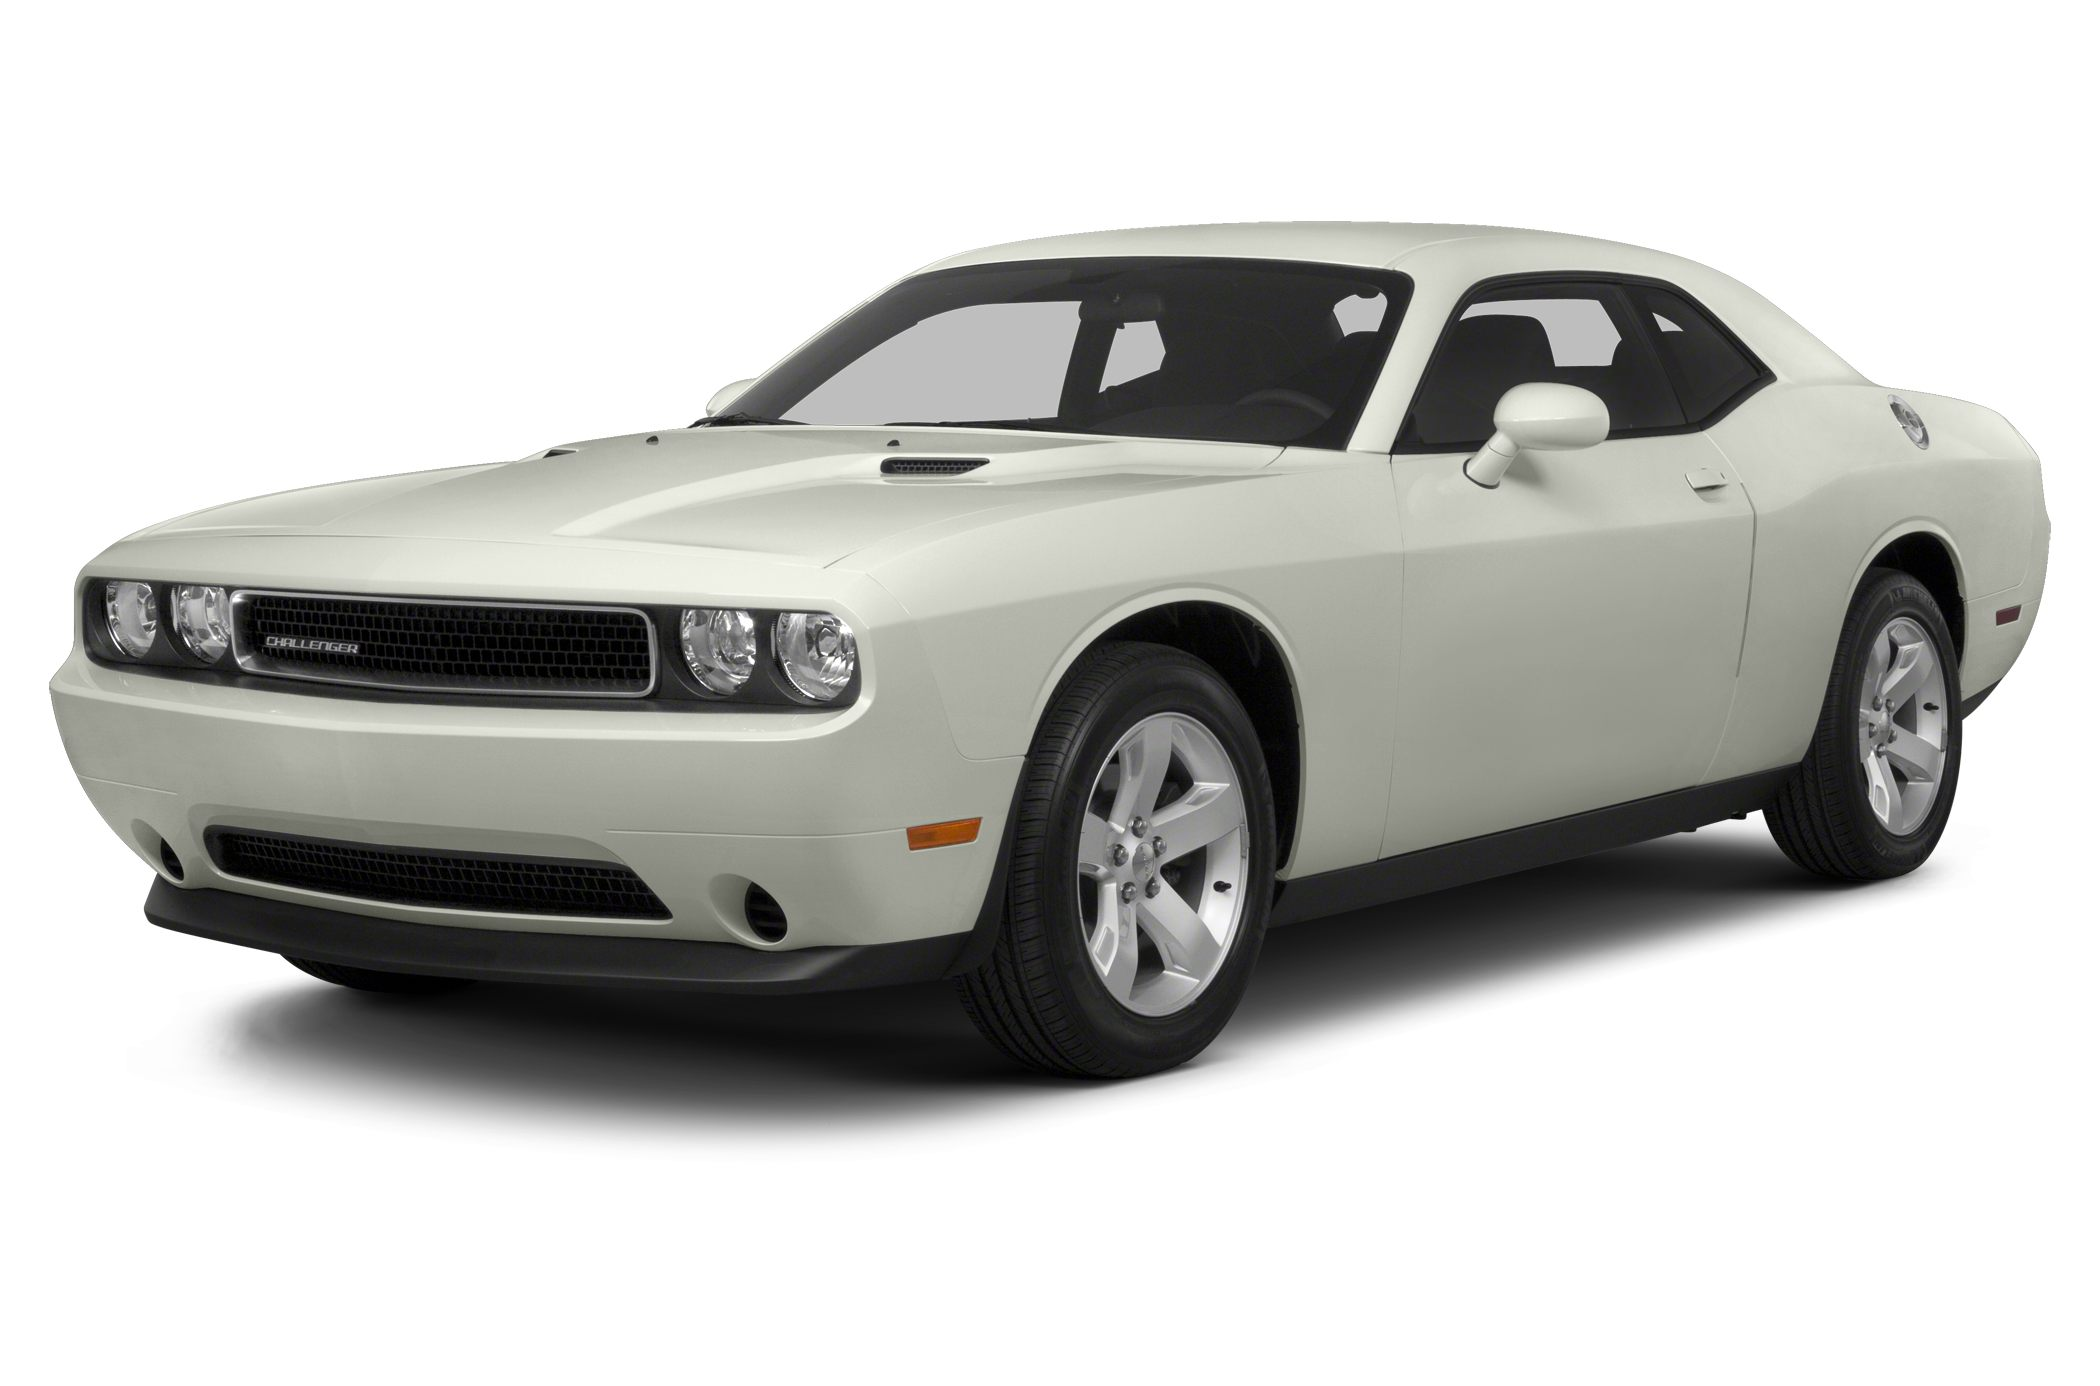 2012 Dodge Challenger SXT Proudly serving manatee county for over 60 years offering Cars Trucks